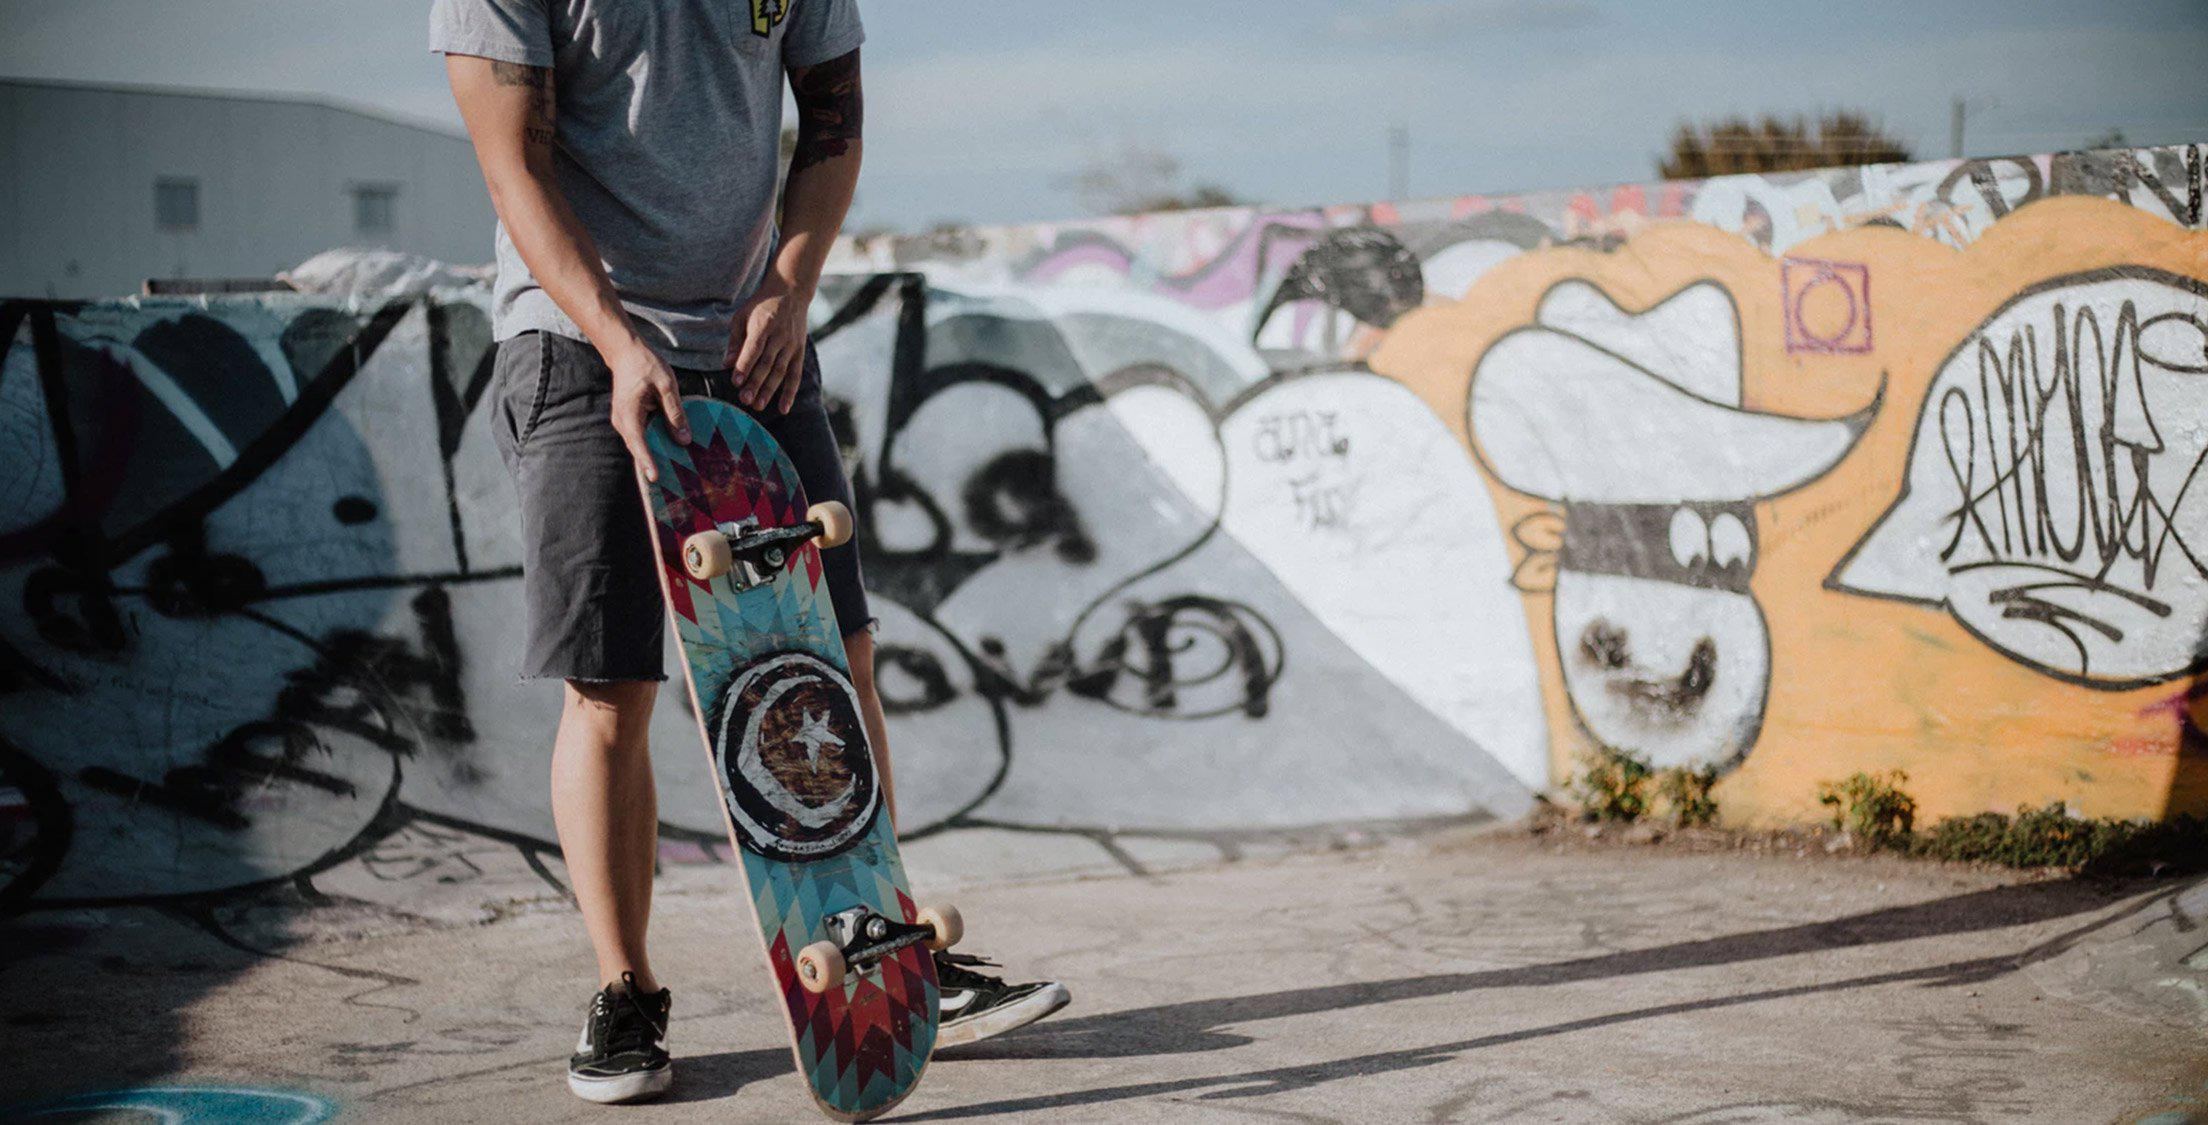 5 must have items to nail the skater vibe